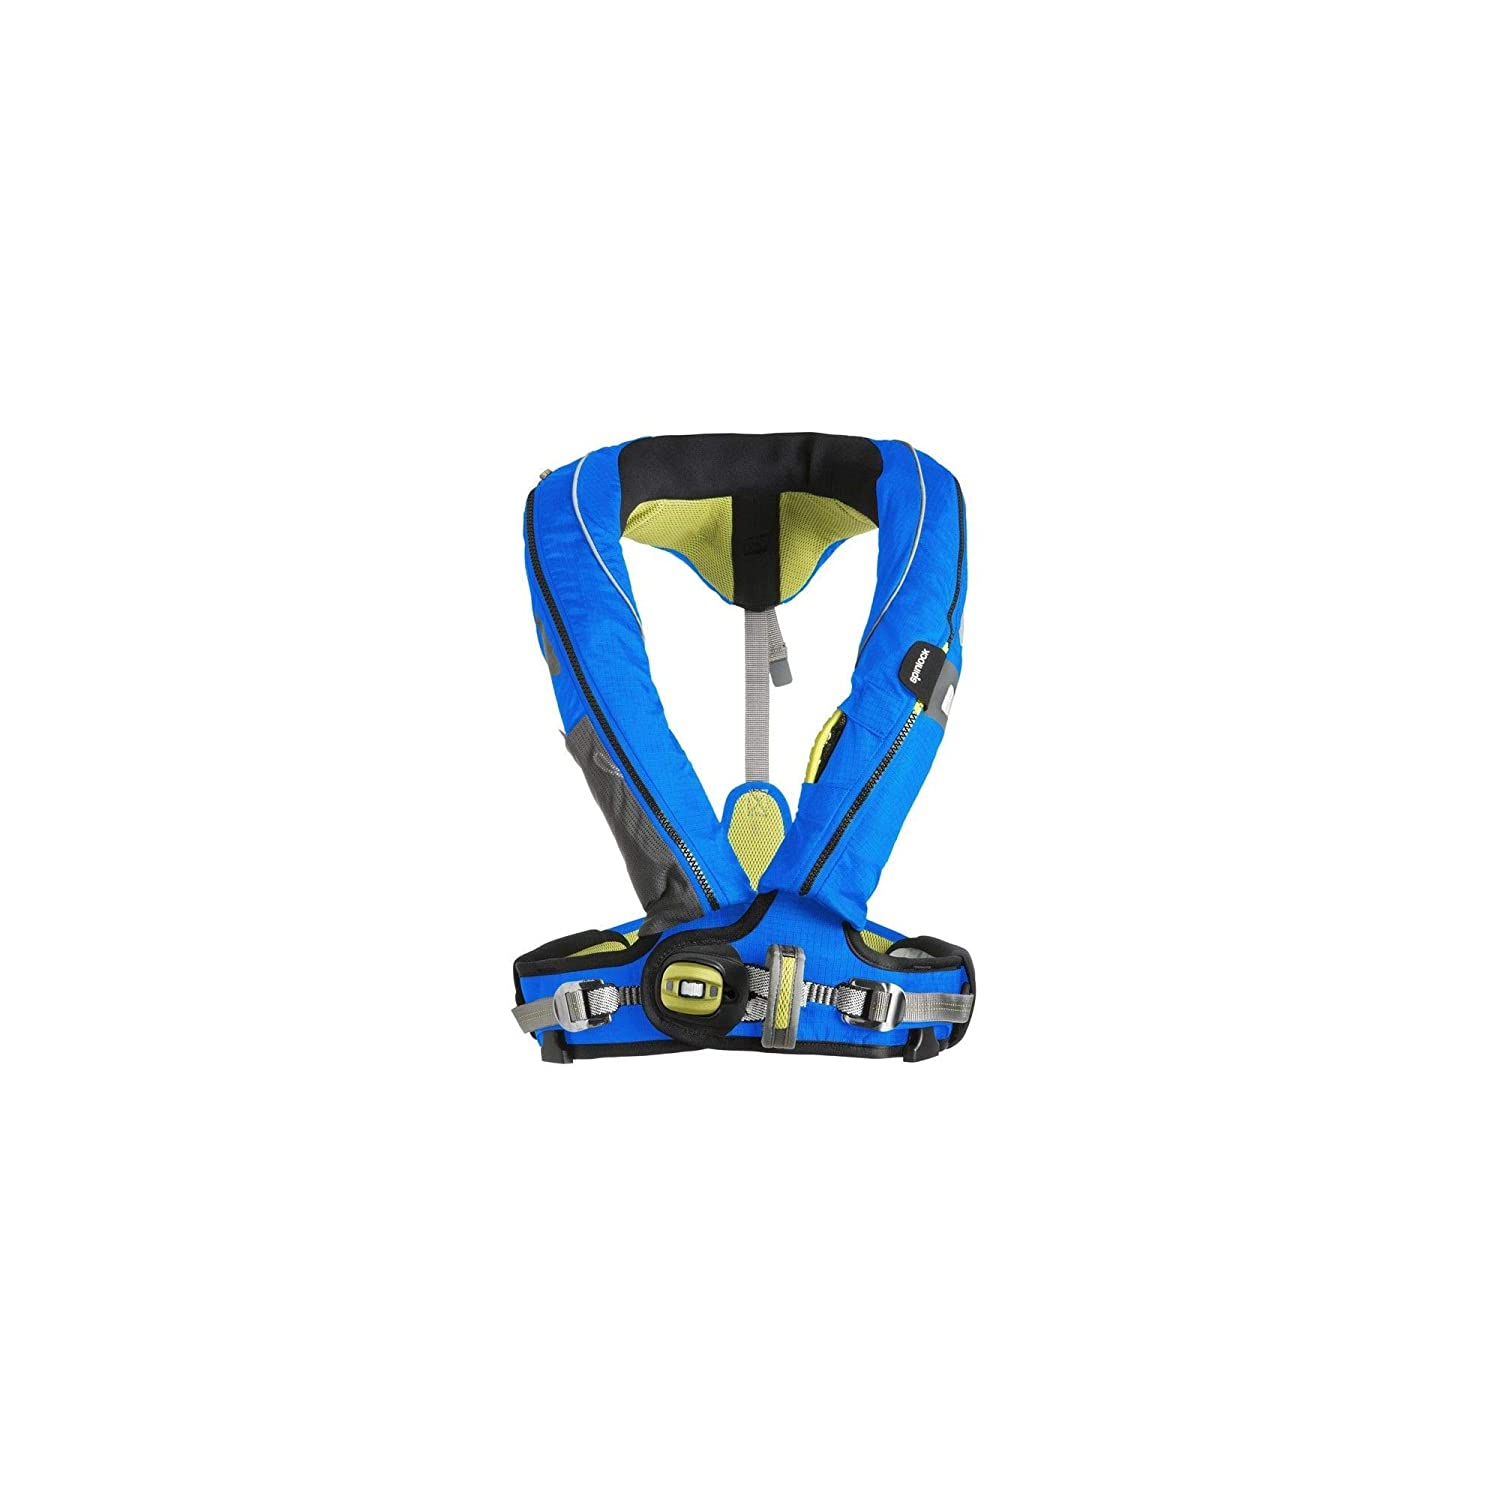 バーゲンで (Size Medium, 2/ B01B7UHV5I Medium, Pacific Blue) - 5D Spinlock Deckvest 5D 170N Pro Sensor Inflatable PFD & Harness B01B7UHV5I, アケノマチ:c84bb416 --- arianechie.dominiotemporario.com